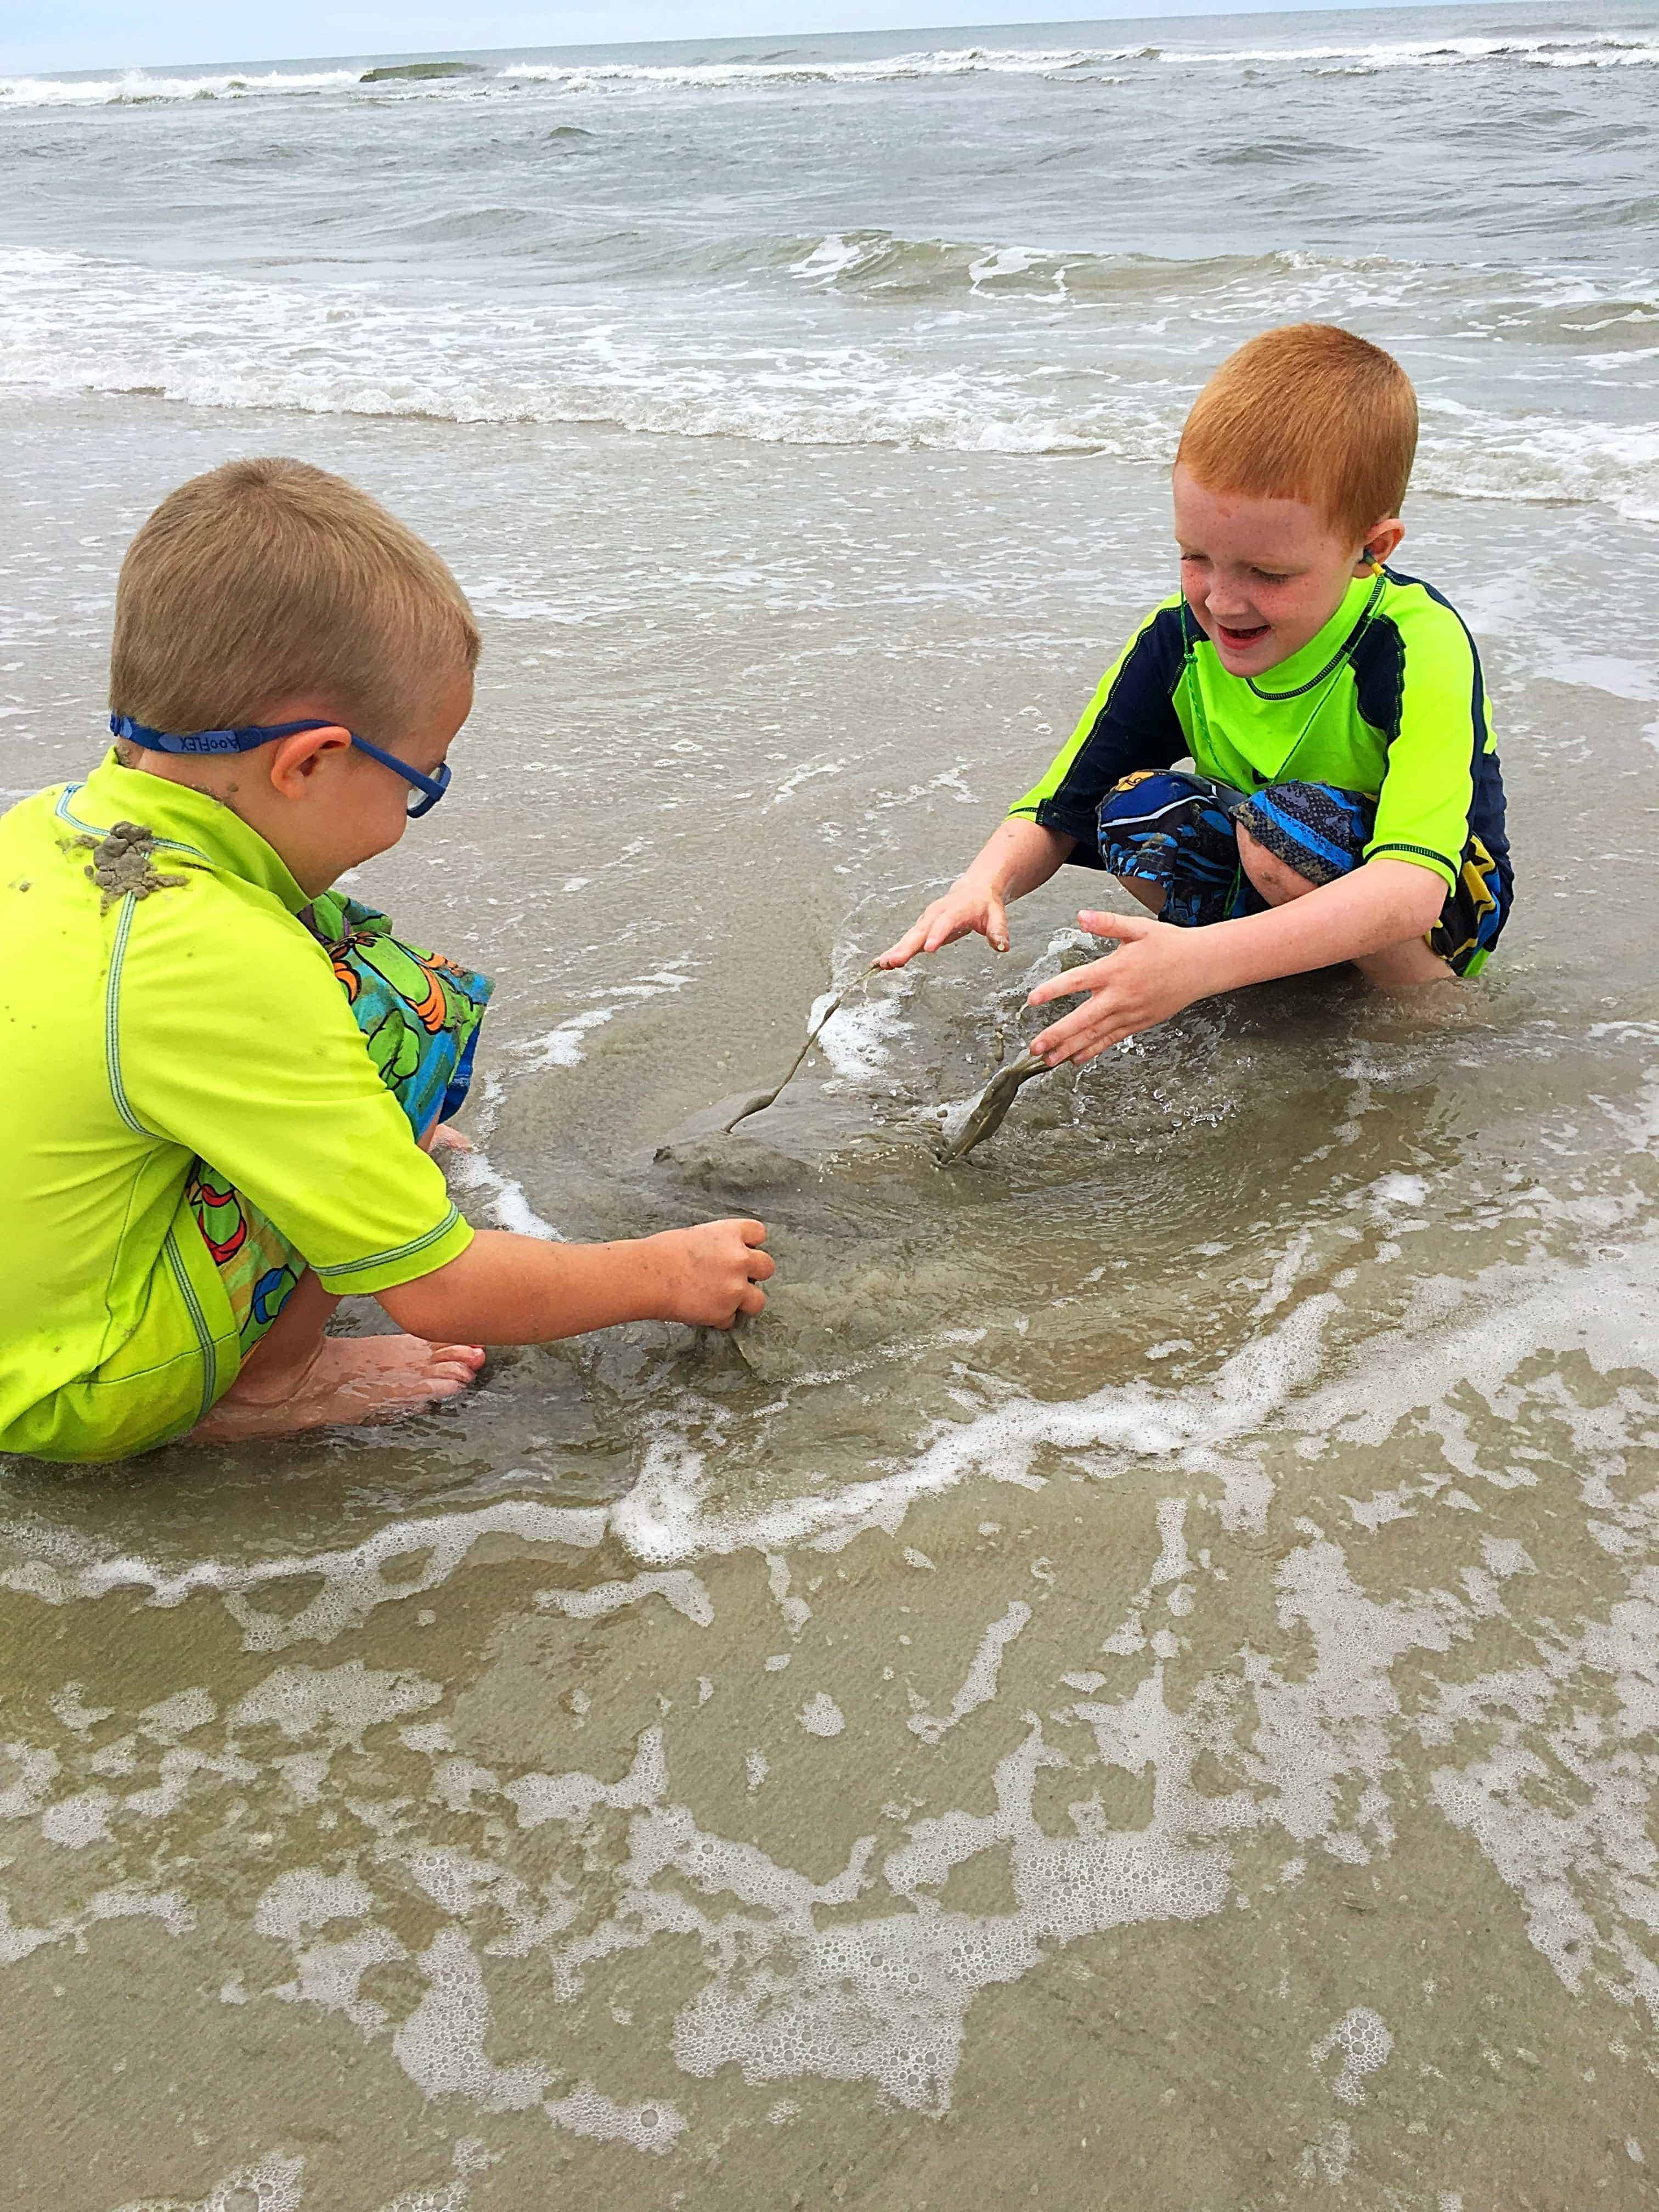 If you're looking for the best beach vacation area in The Outer Banks, North Carolina for families, look no further! Today I'm sharing a full recap of our Outer Banks family vacation with photos and recommendations on must-see spots, kid-friendly things to do, and the best places to eat!